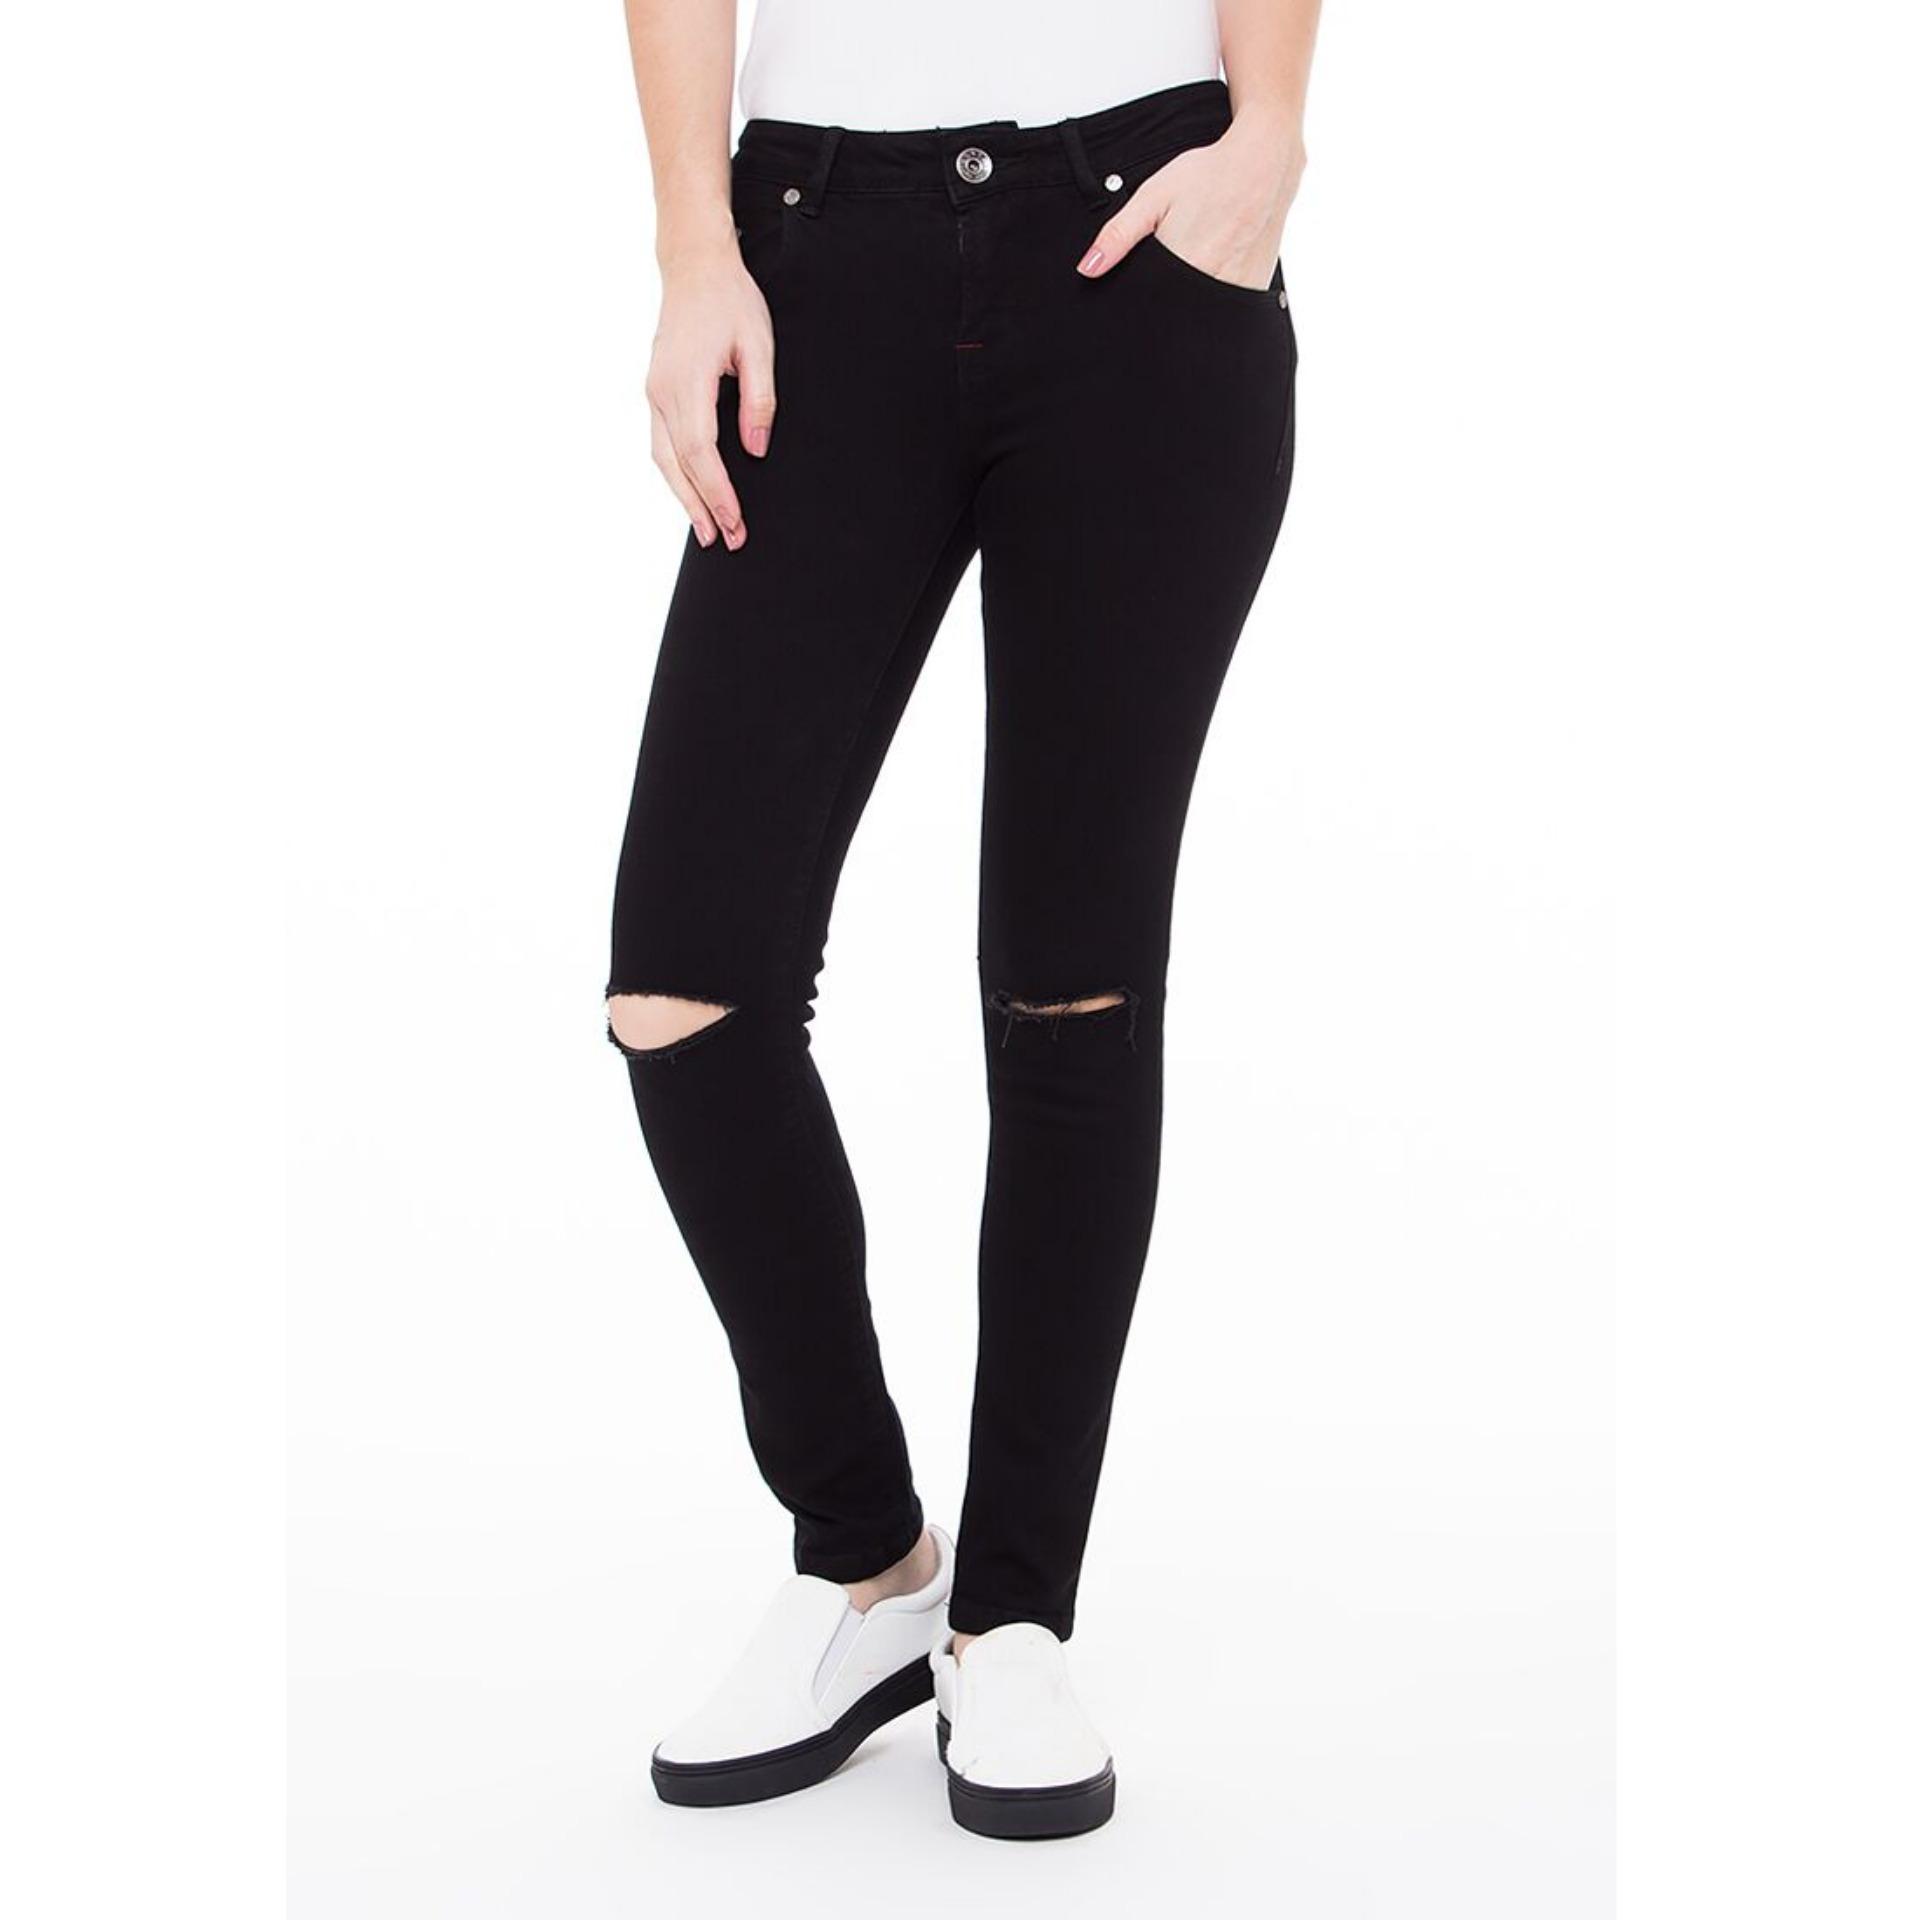 Tips Beli Docdenim Ladies Jeans Calique Cut Ripped Skinny Fit Hitam Yang Bagus